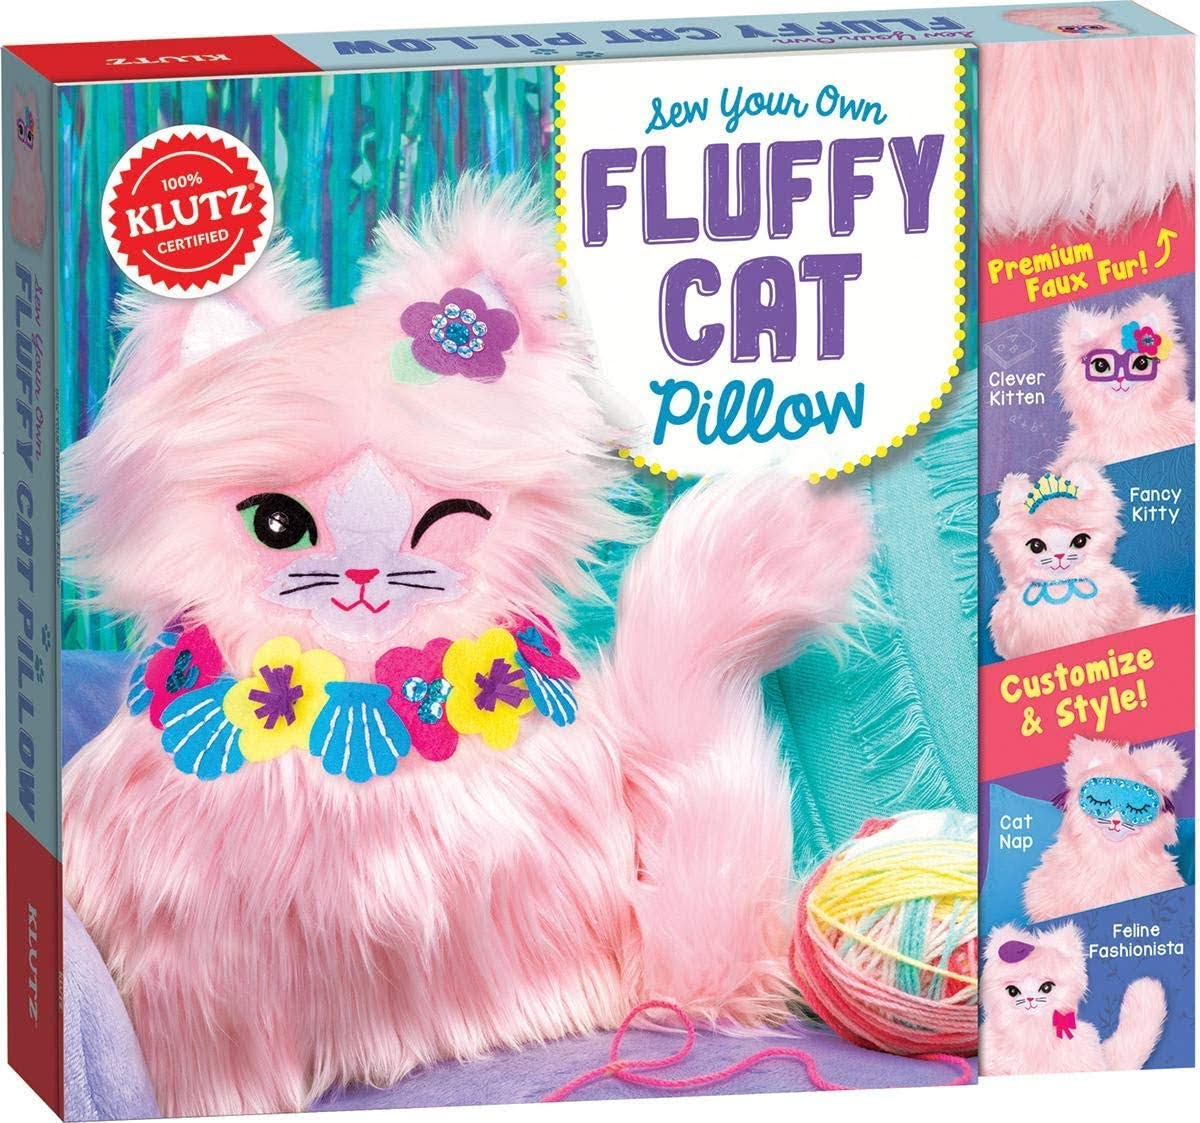 Sew Your Own Fluffy Cat Pillow